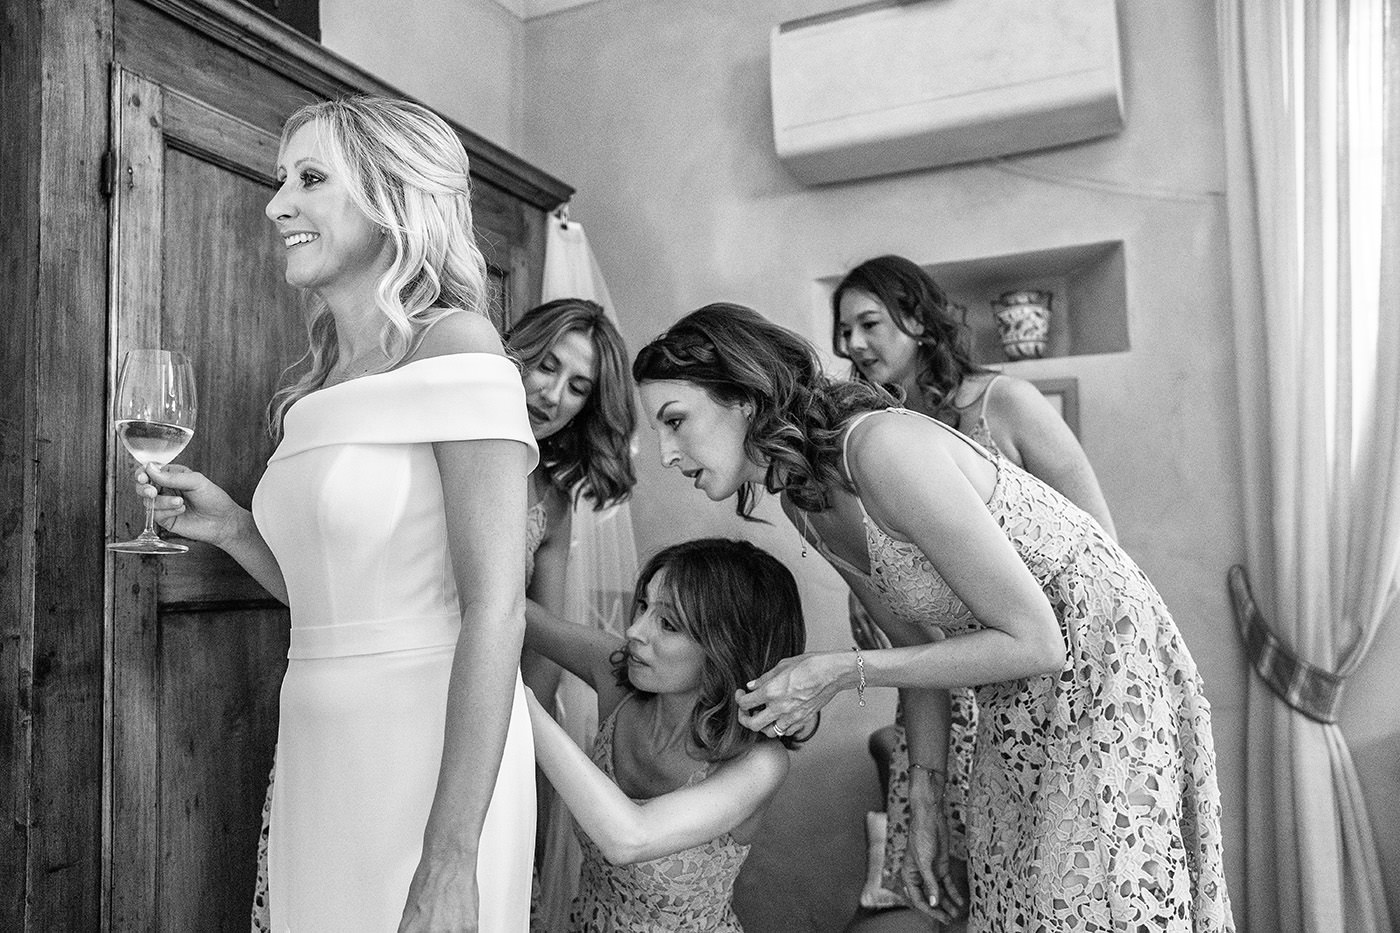 Tuscan Wedding Photo Shoots At Palagio Castle: bride's getting ready